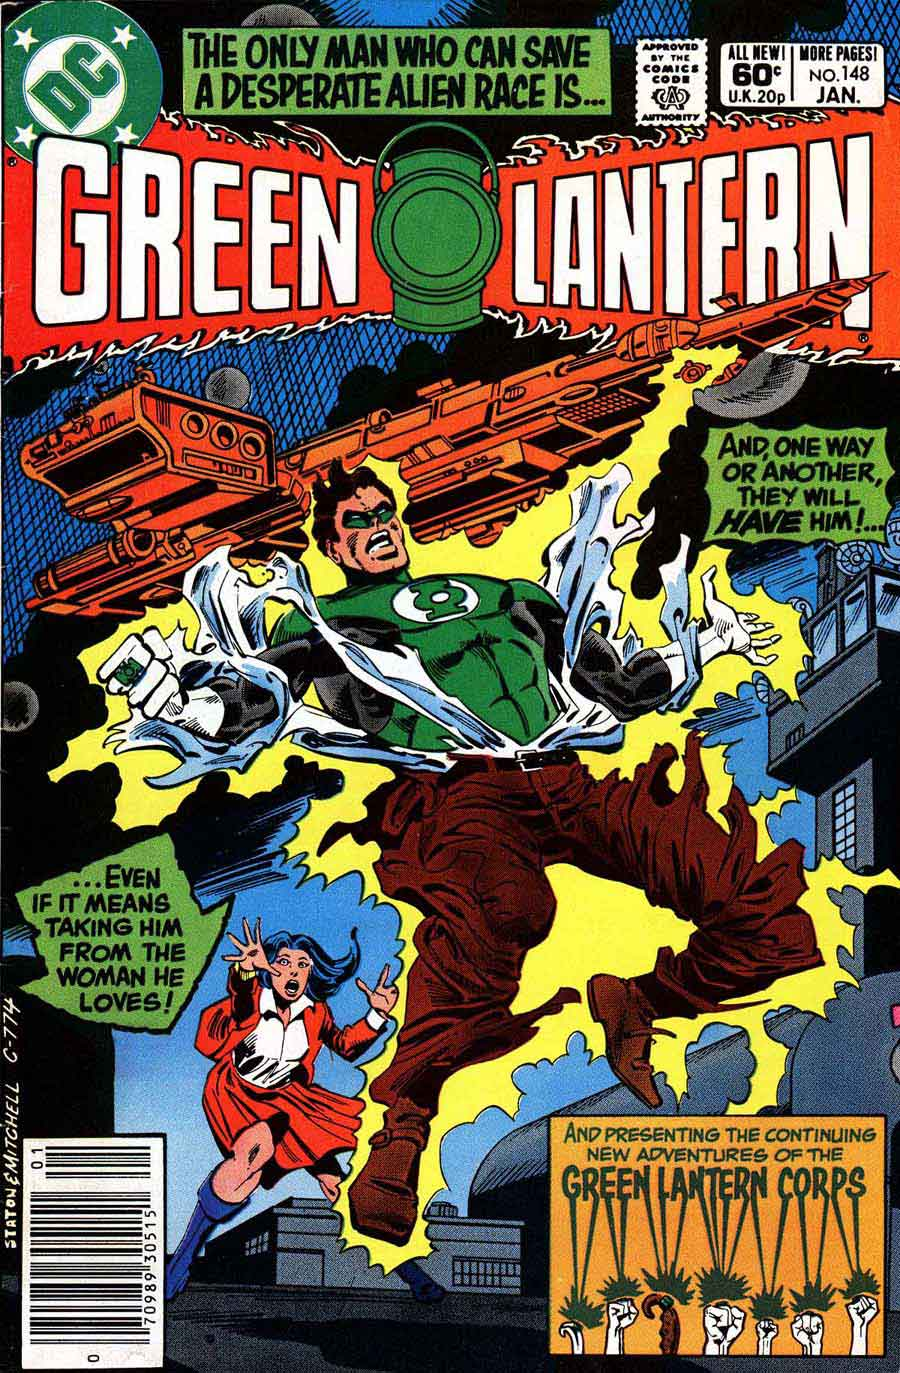 Green Lantern v2 #148 dc comic book cover art